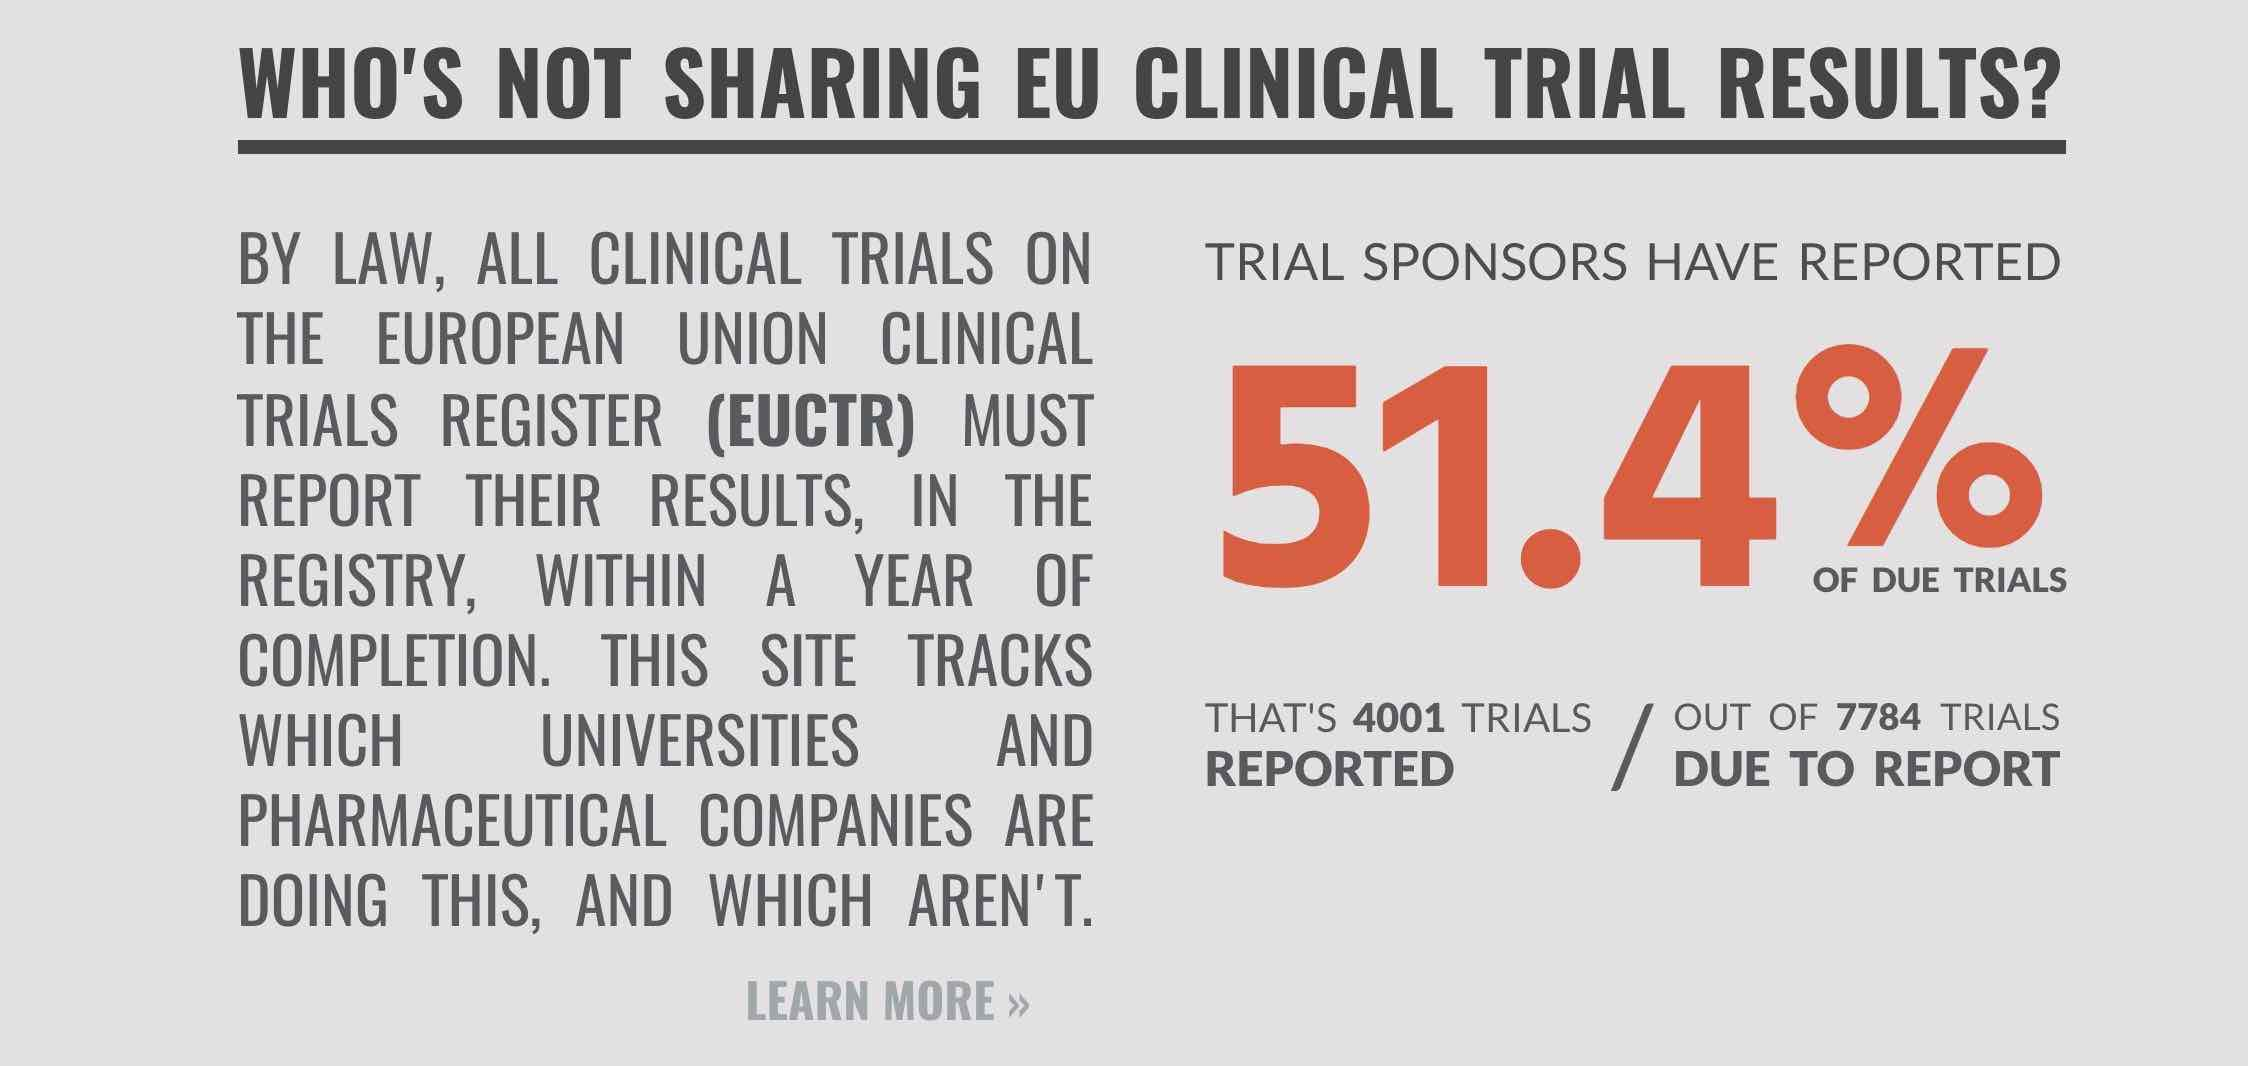 Clinical Trials transparency is failing - here's why | BMJ EBM Spotlight